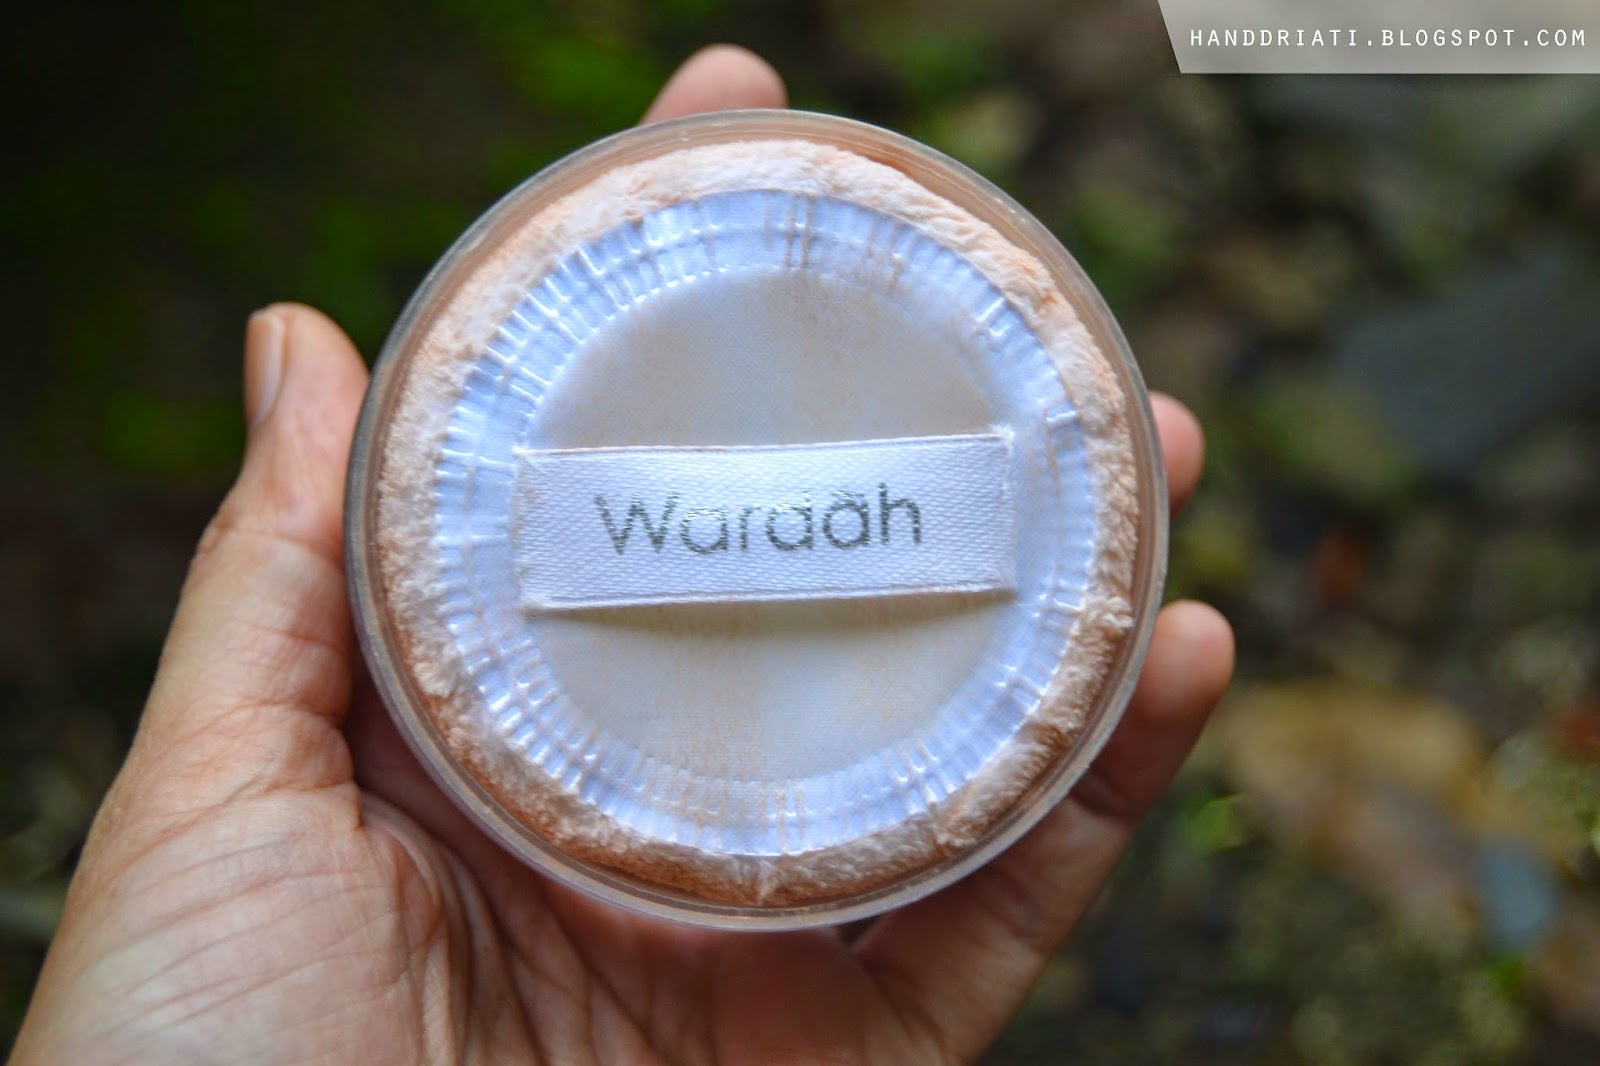 Review Bedak Tabur Wardah Face Powder Acne Series | One